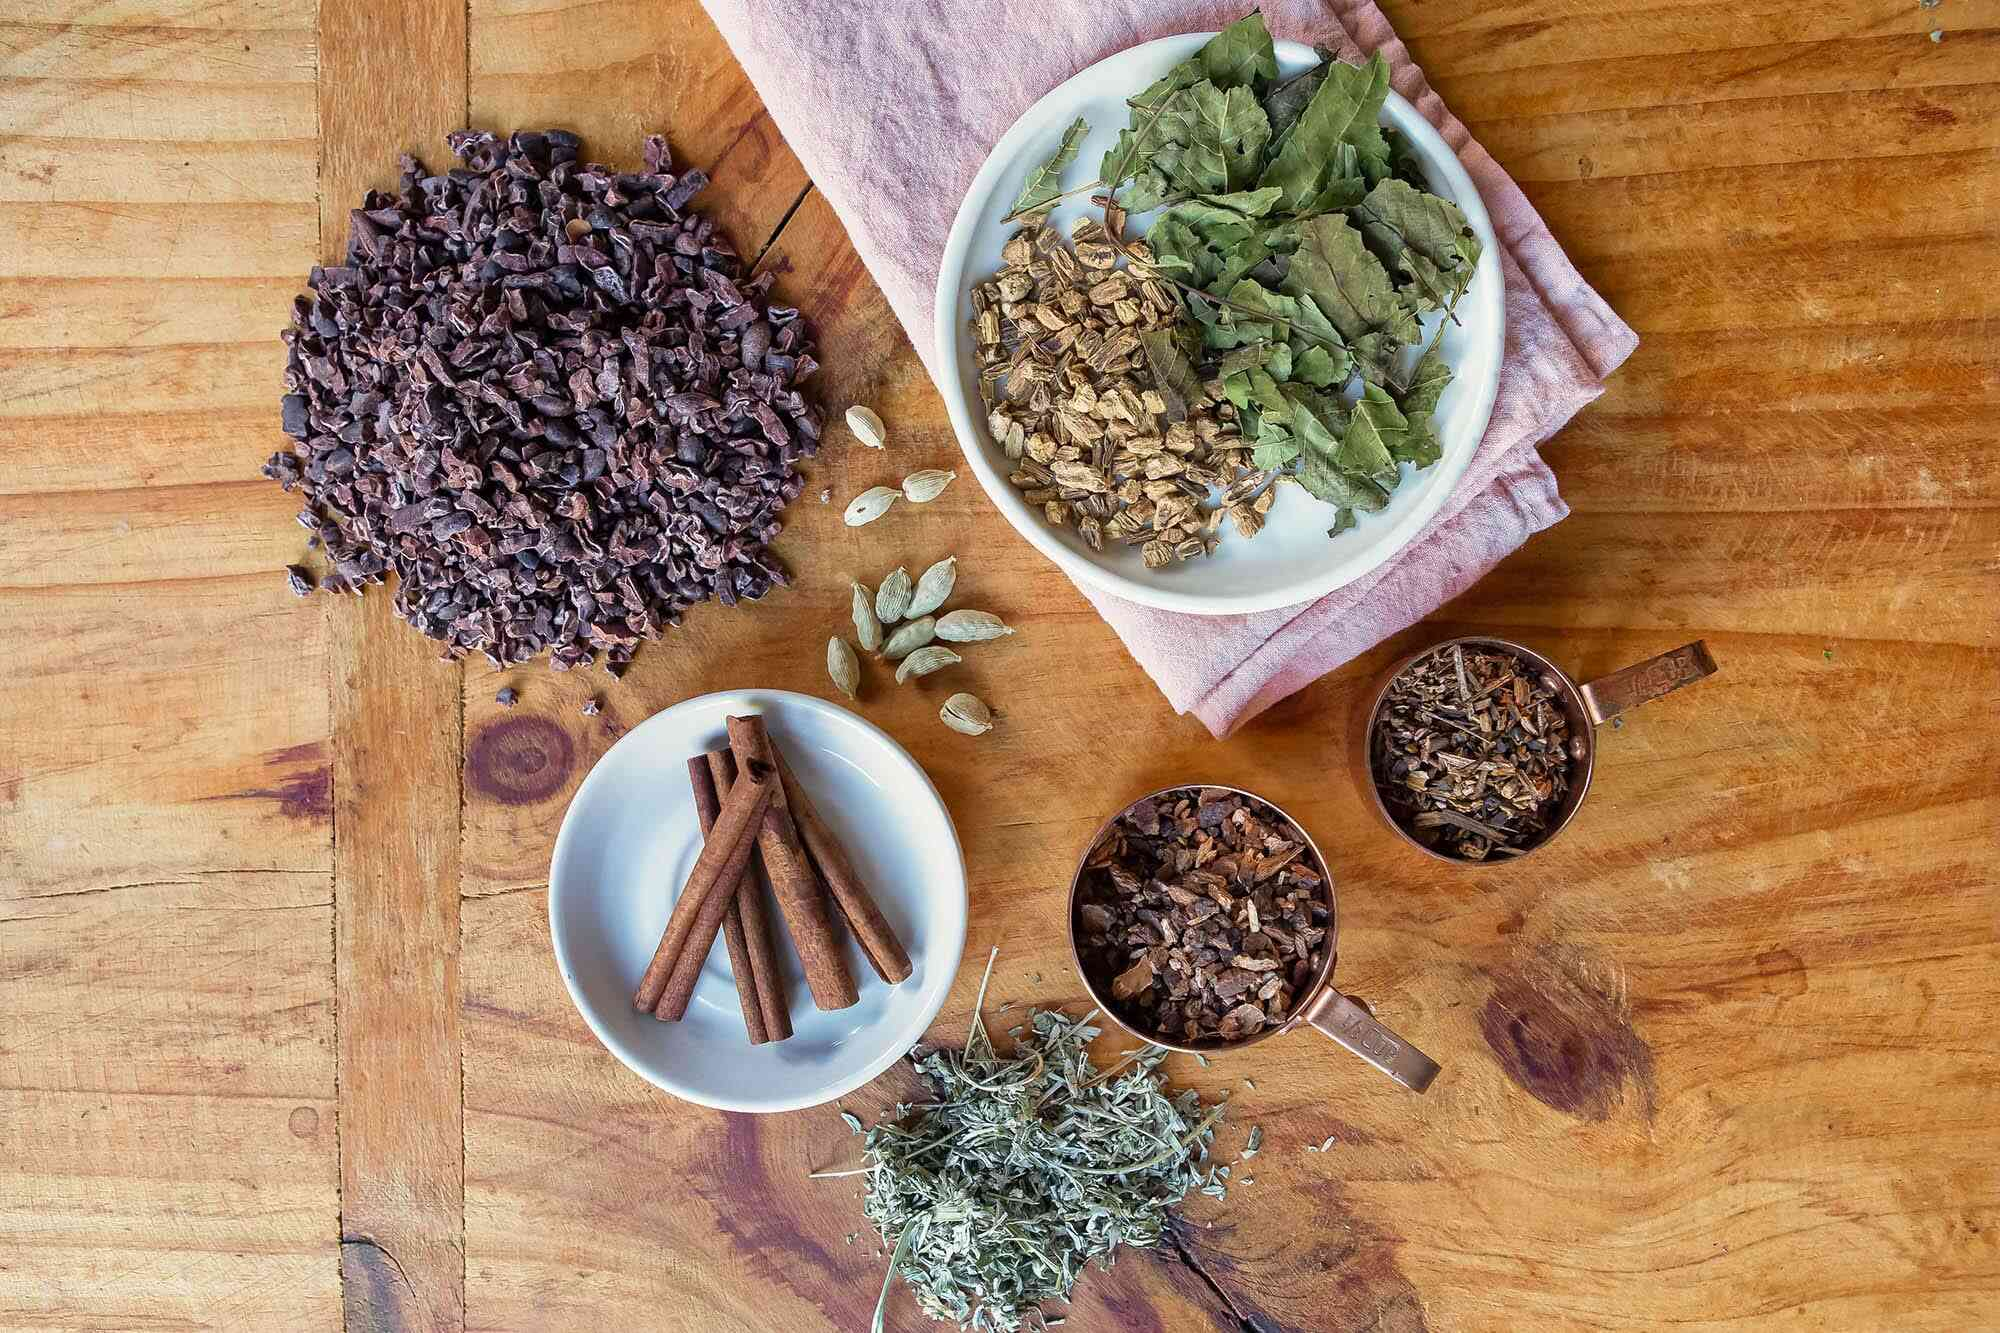 A variety of spices, herbs and roots to make Chocolate cocktail bitters.